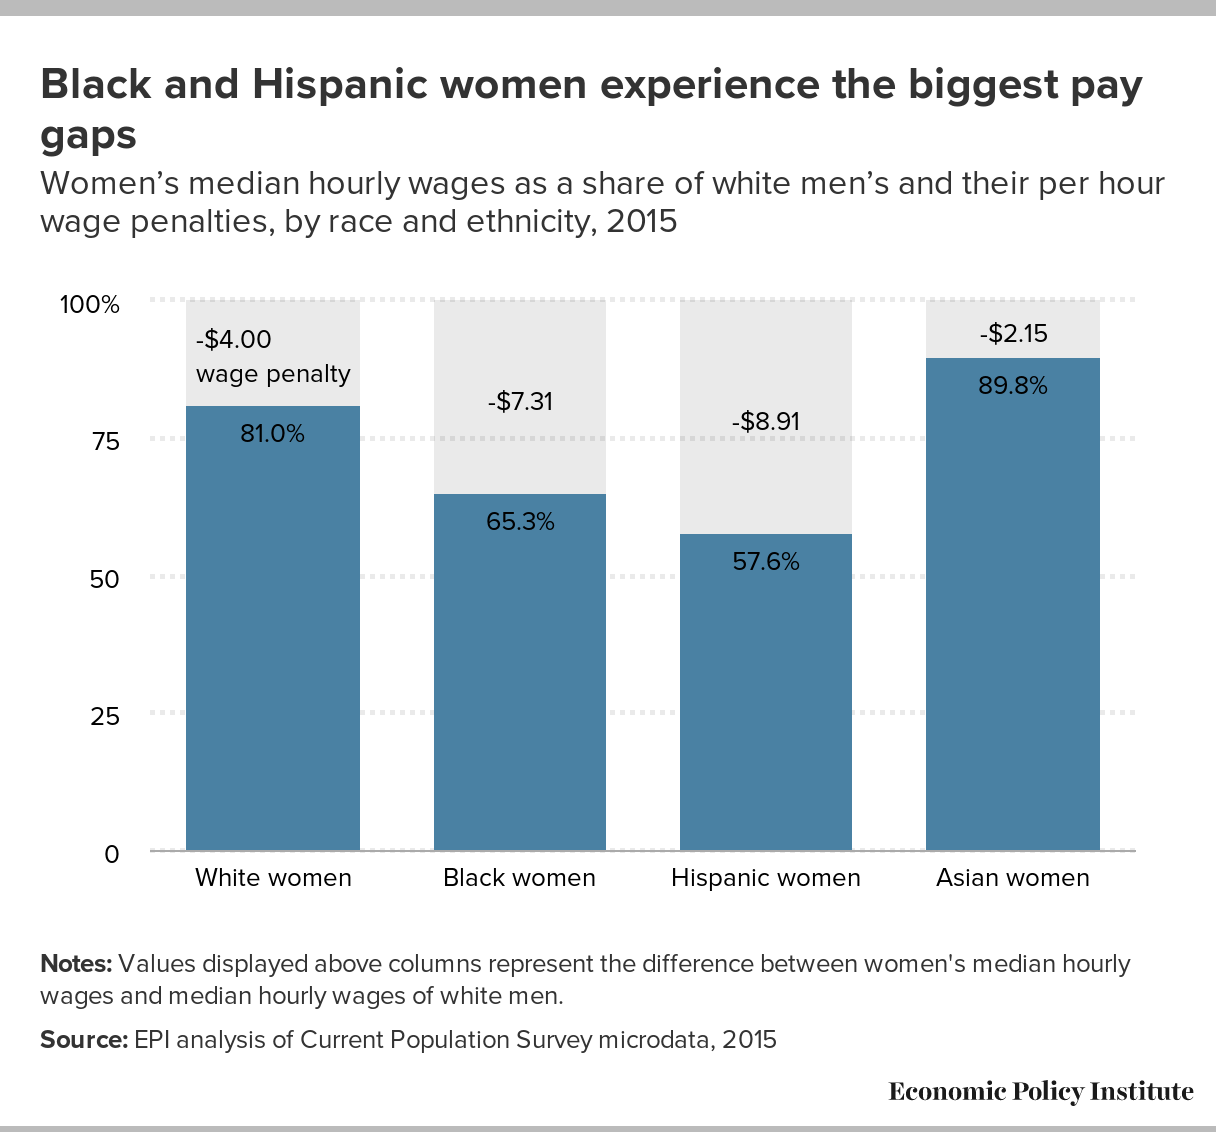 Black and Hispanic women experience the biggest pay gaps